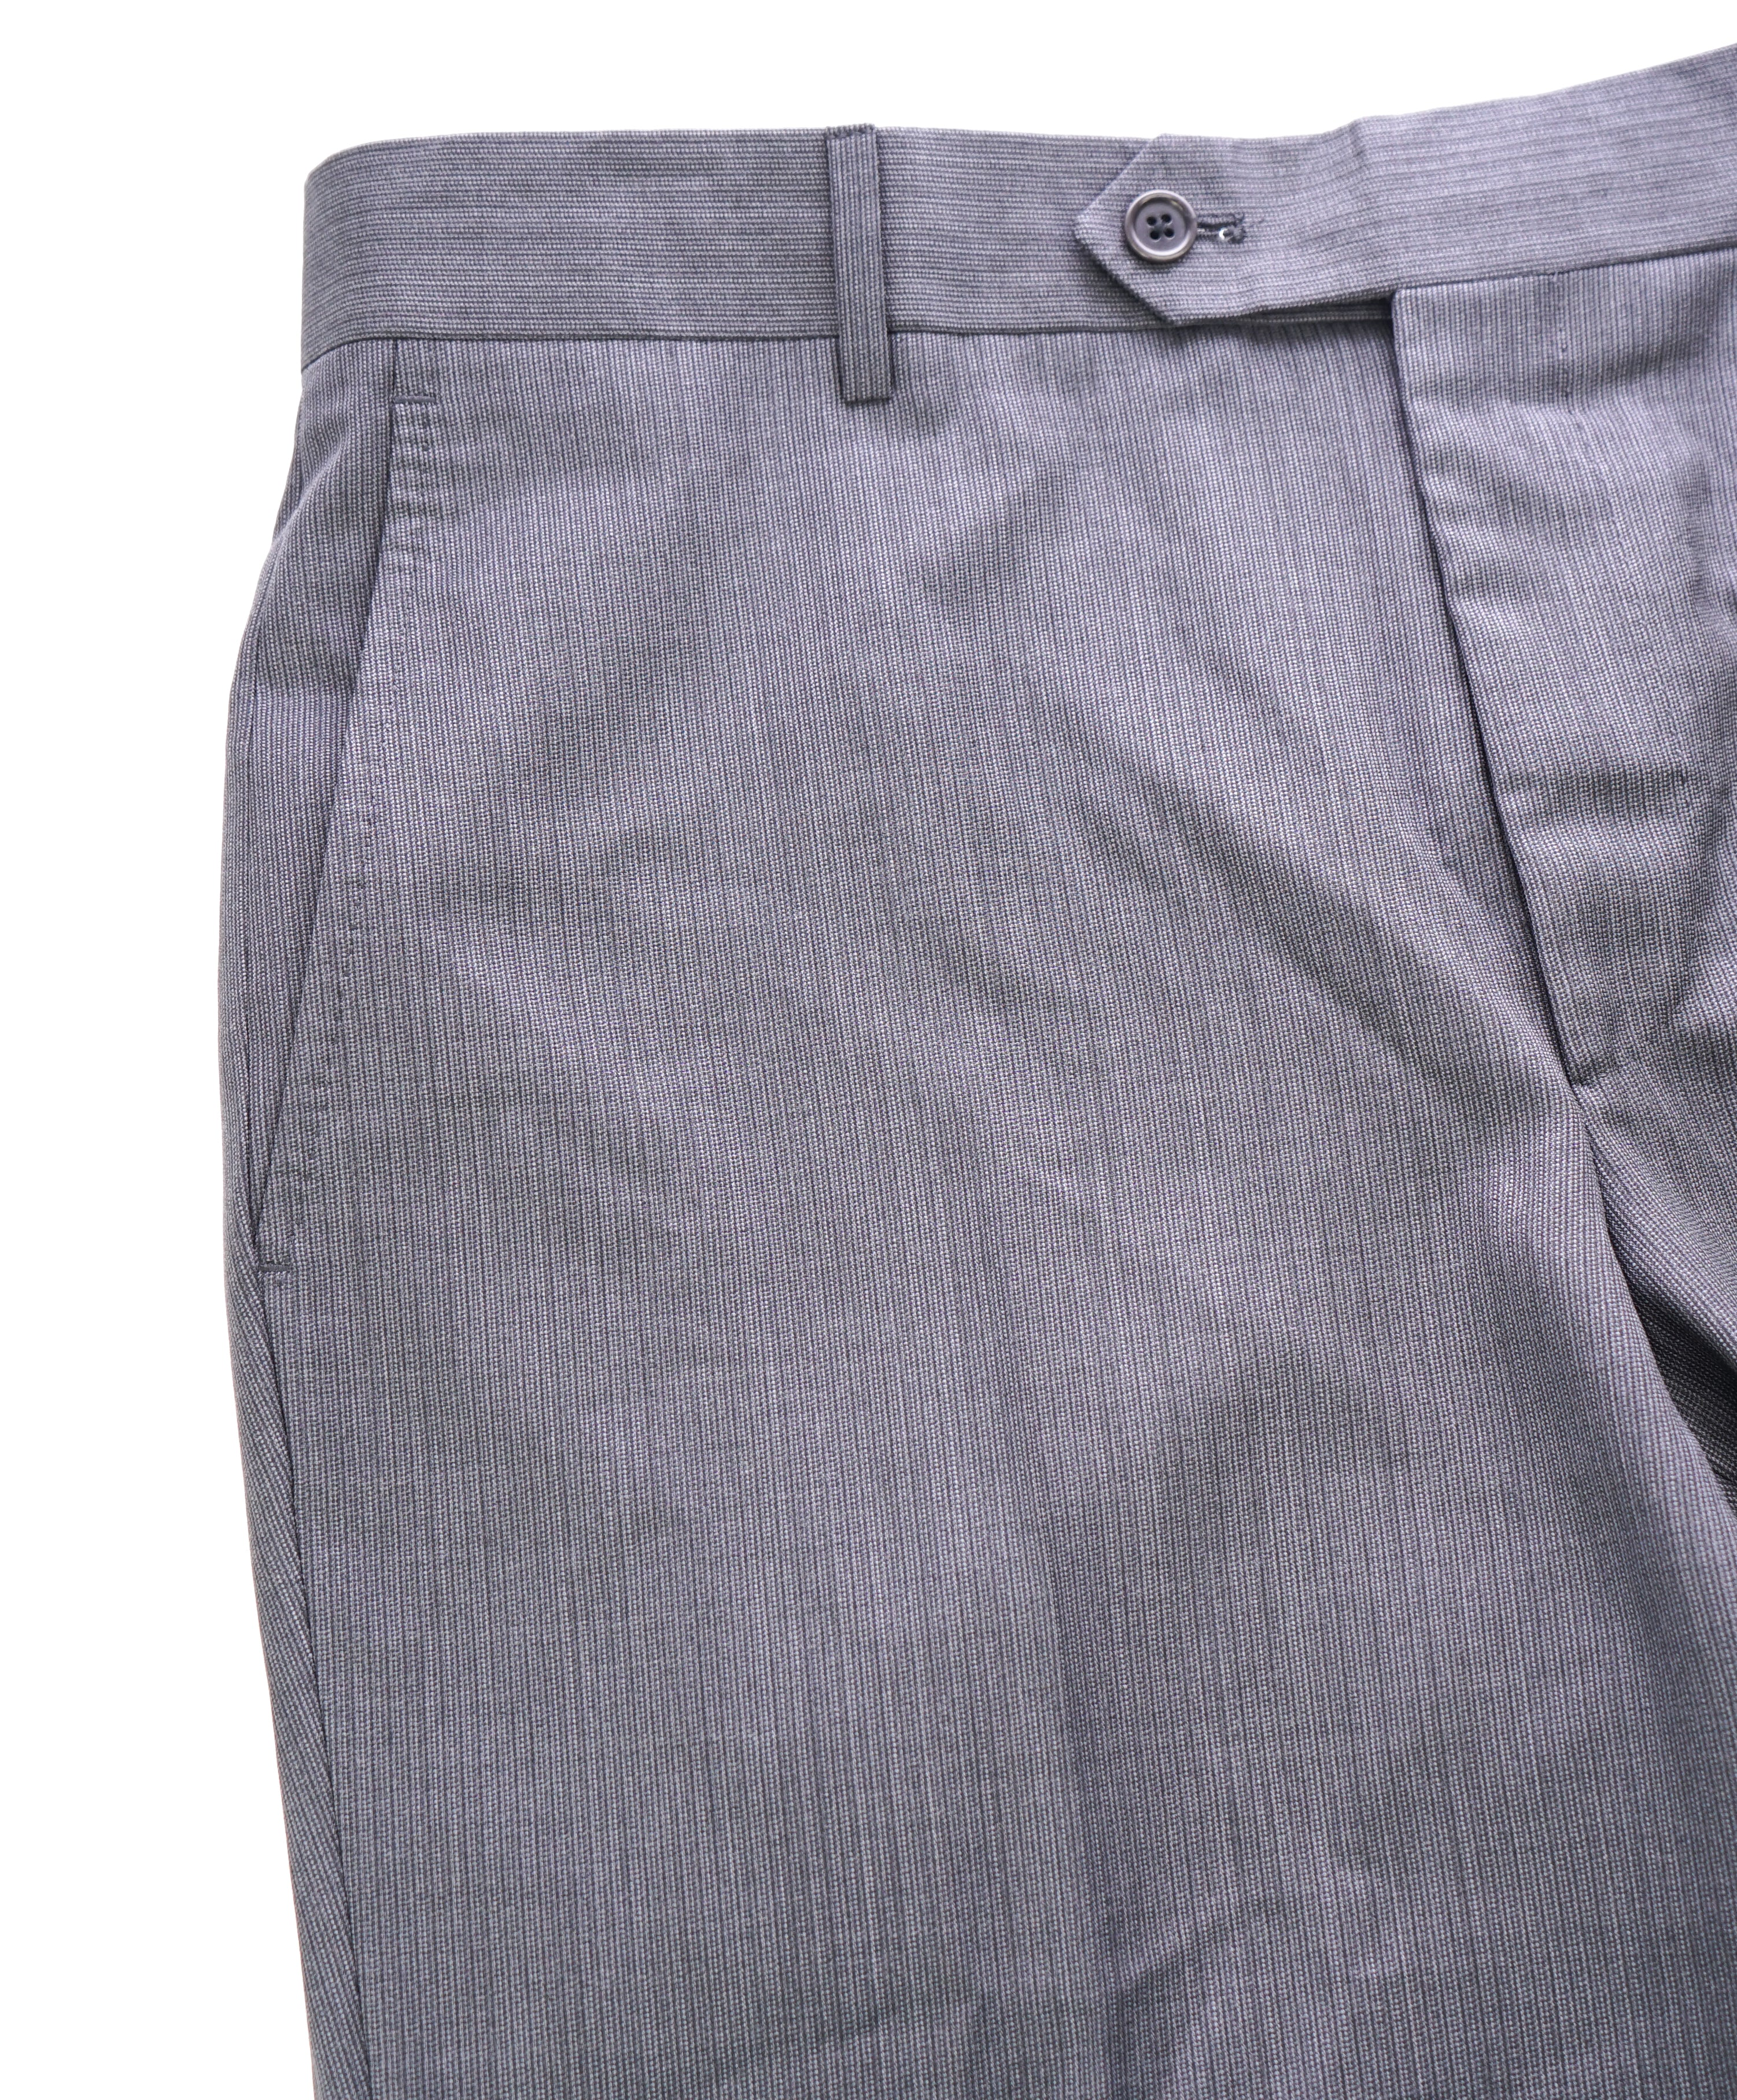 SAKS FIFTH AVE - Micro Herringbone Gray MADE IN ITALY Flat Front Dress Pants - 34W